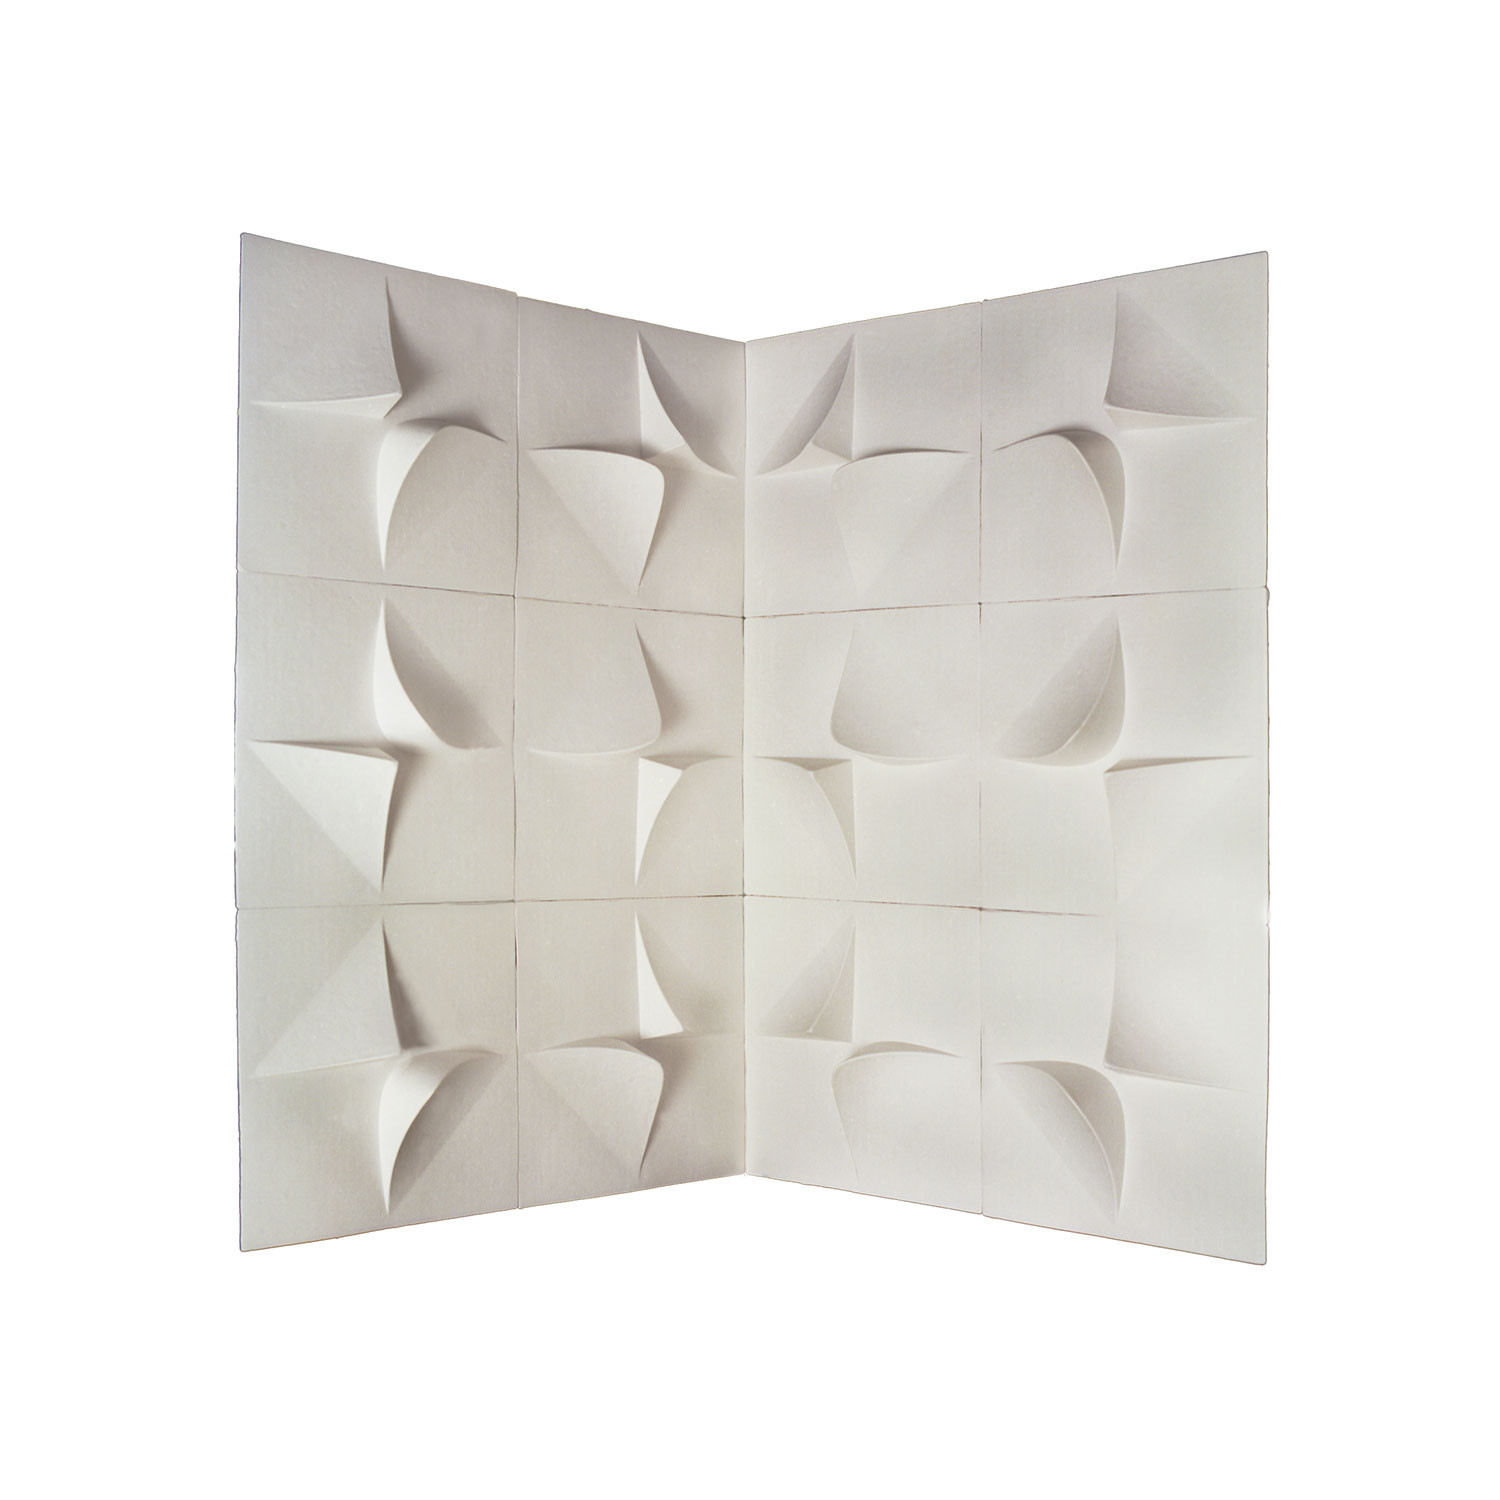 Paperforms 3d Wallpaper Tiles Paperforms V2 Mio Culture Touch Of Modern